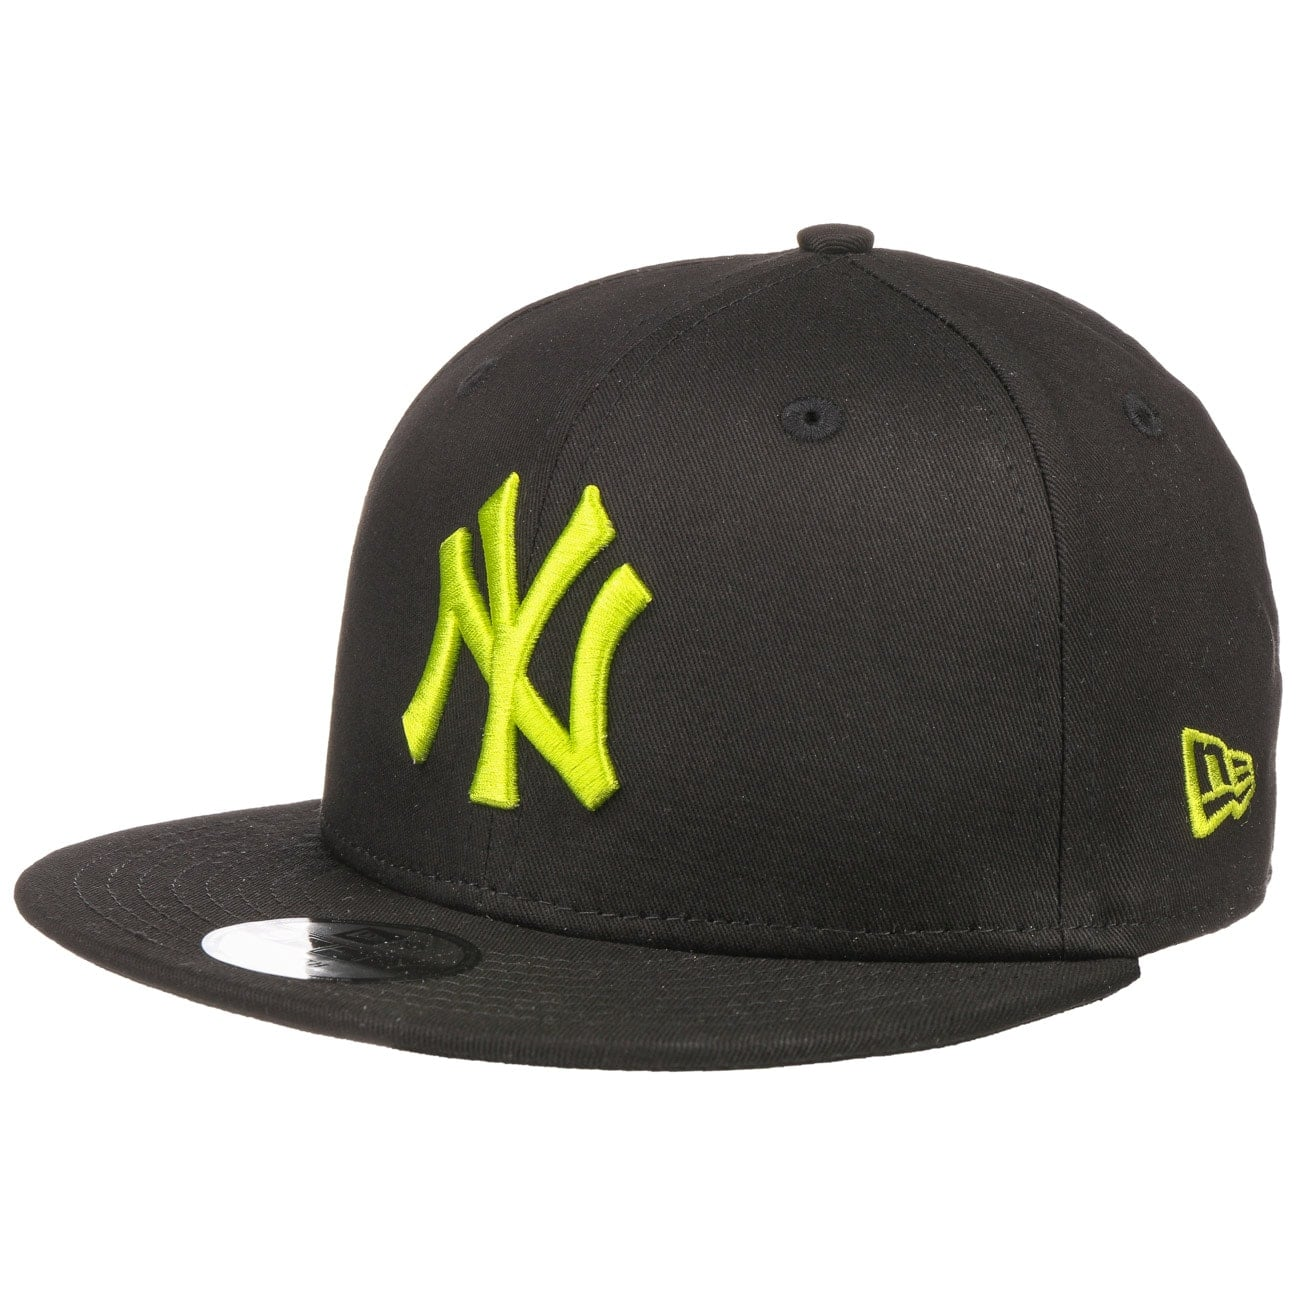 9Fifty KIDS Yankees by New Era